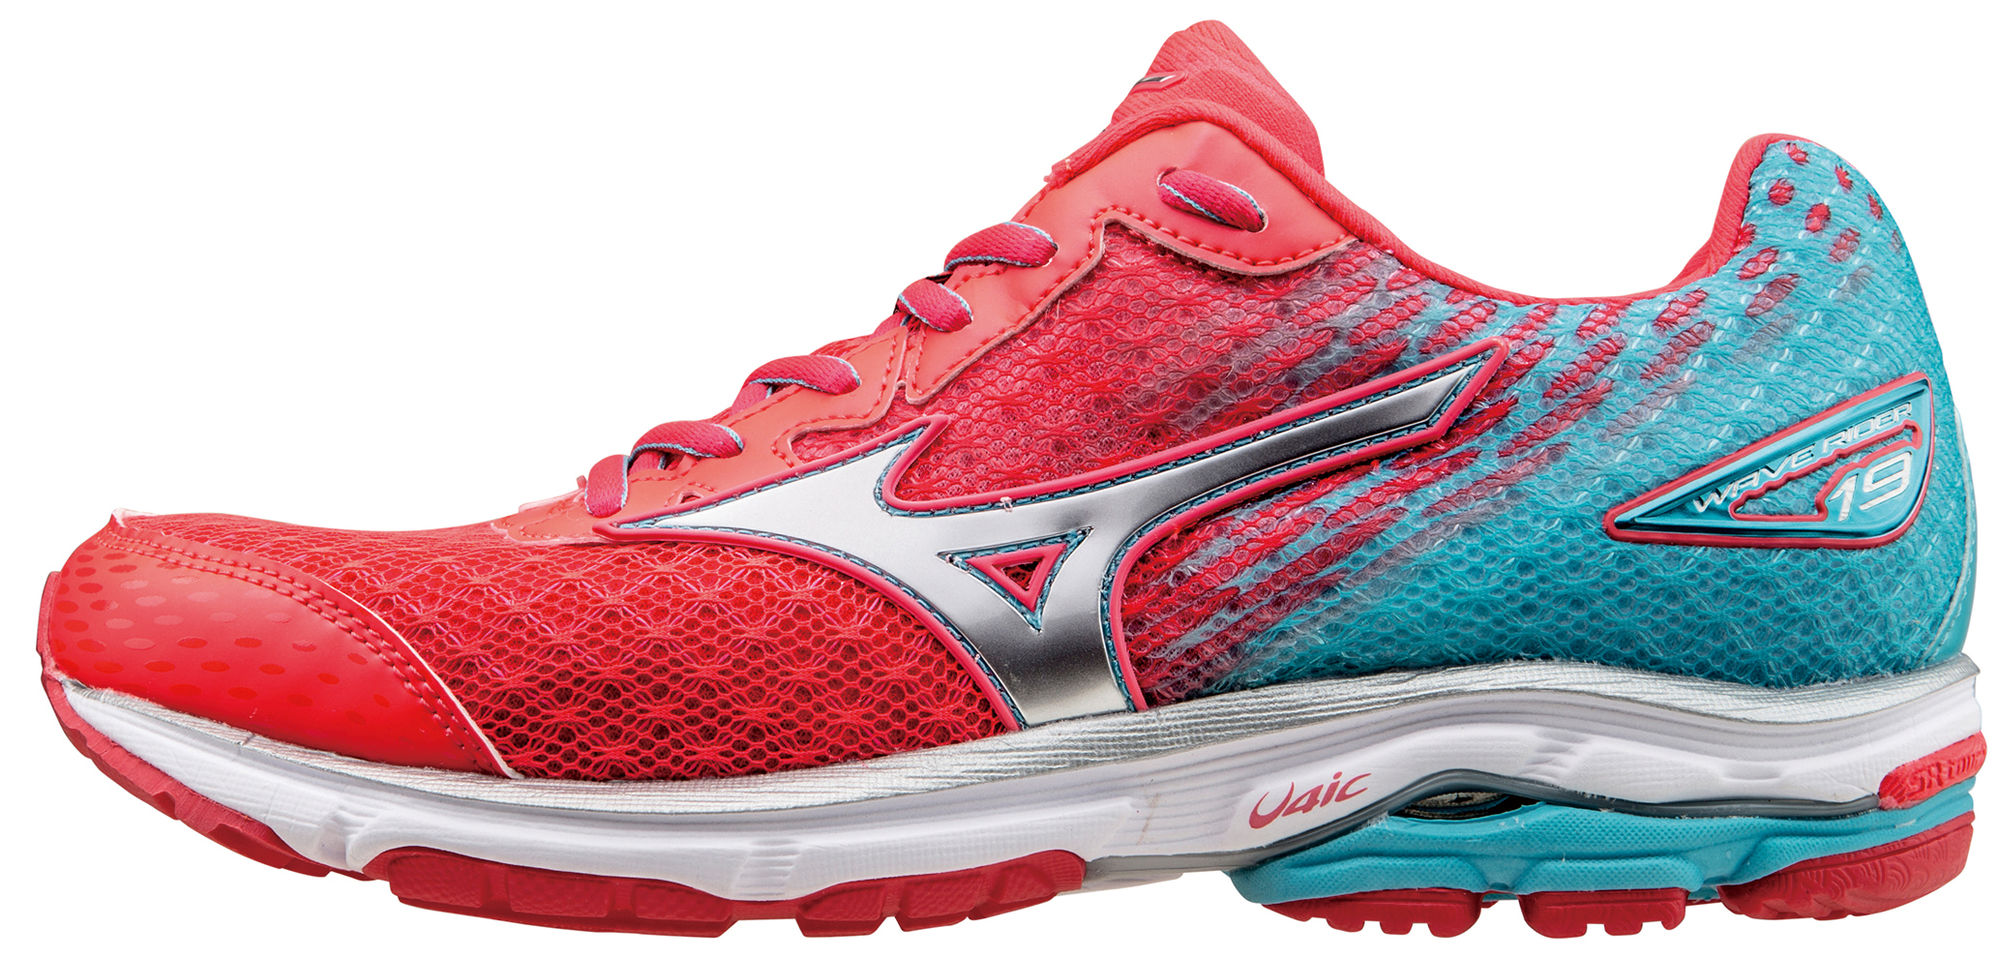 Mizuno Lady Wave Rider 19 in Pink Lila